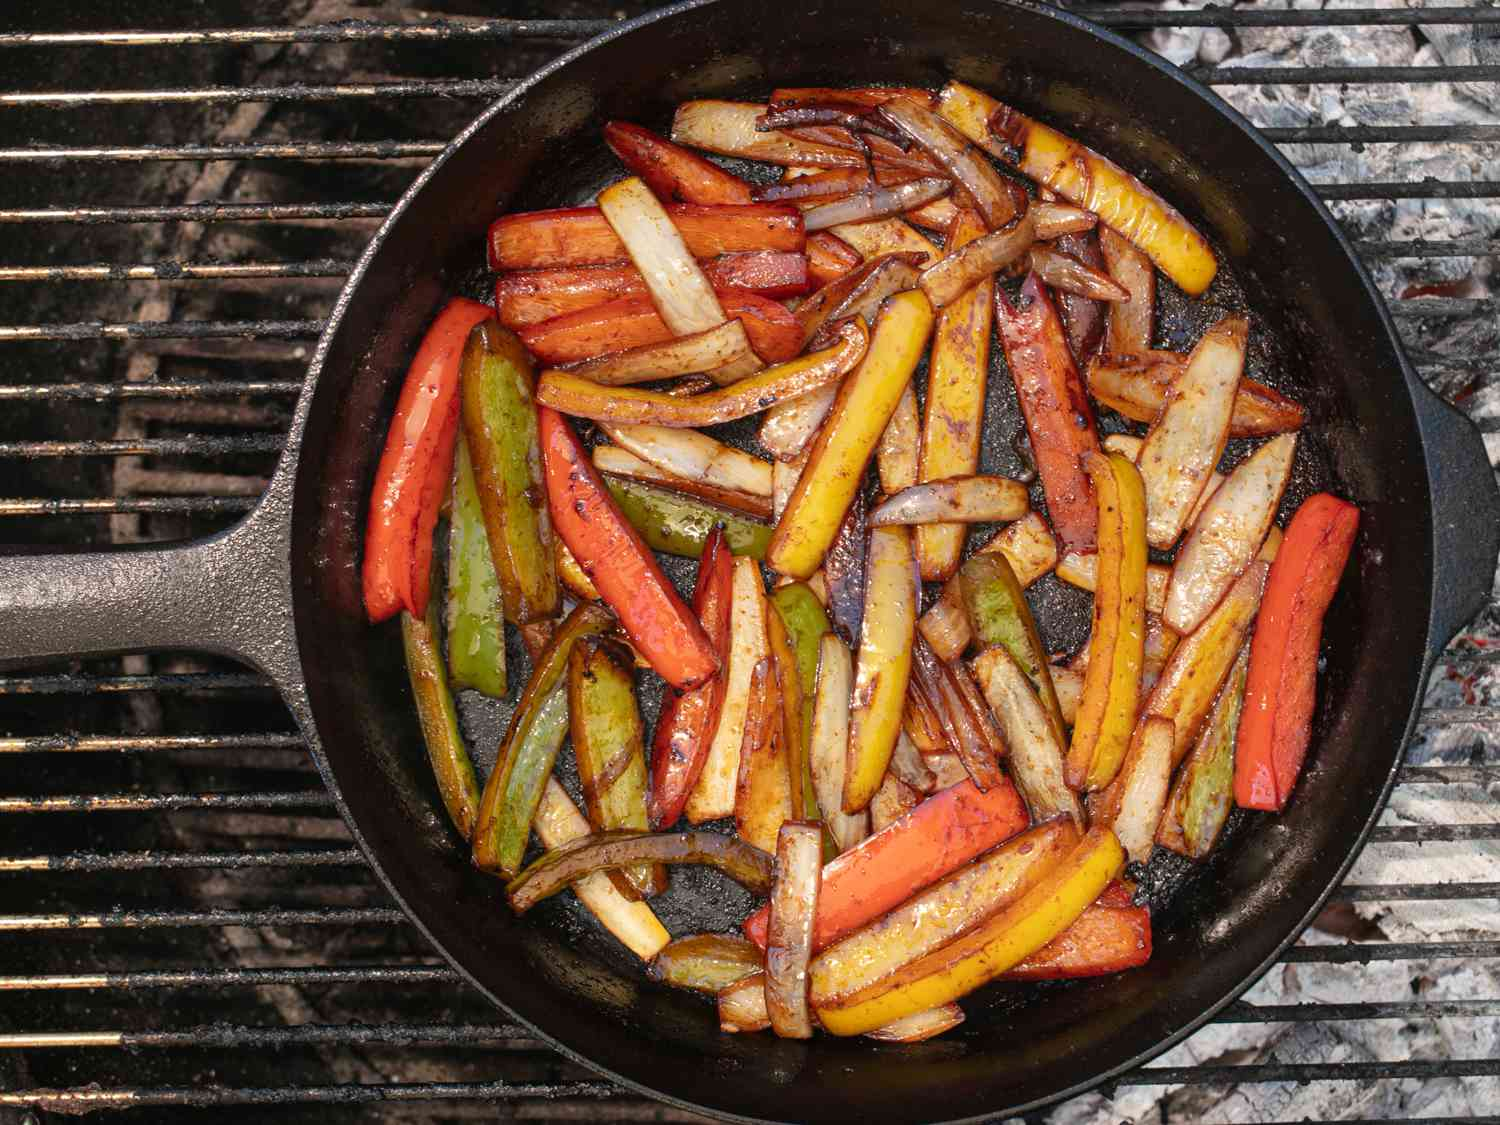 Peppers and onions cooking in a cast iron skillet on a charcoal grill.